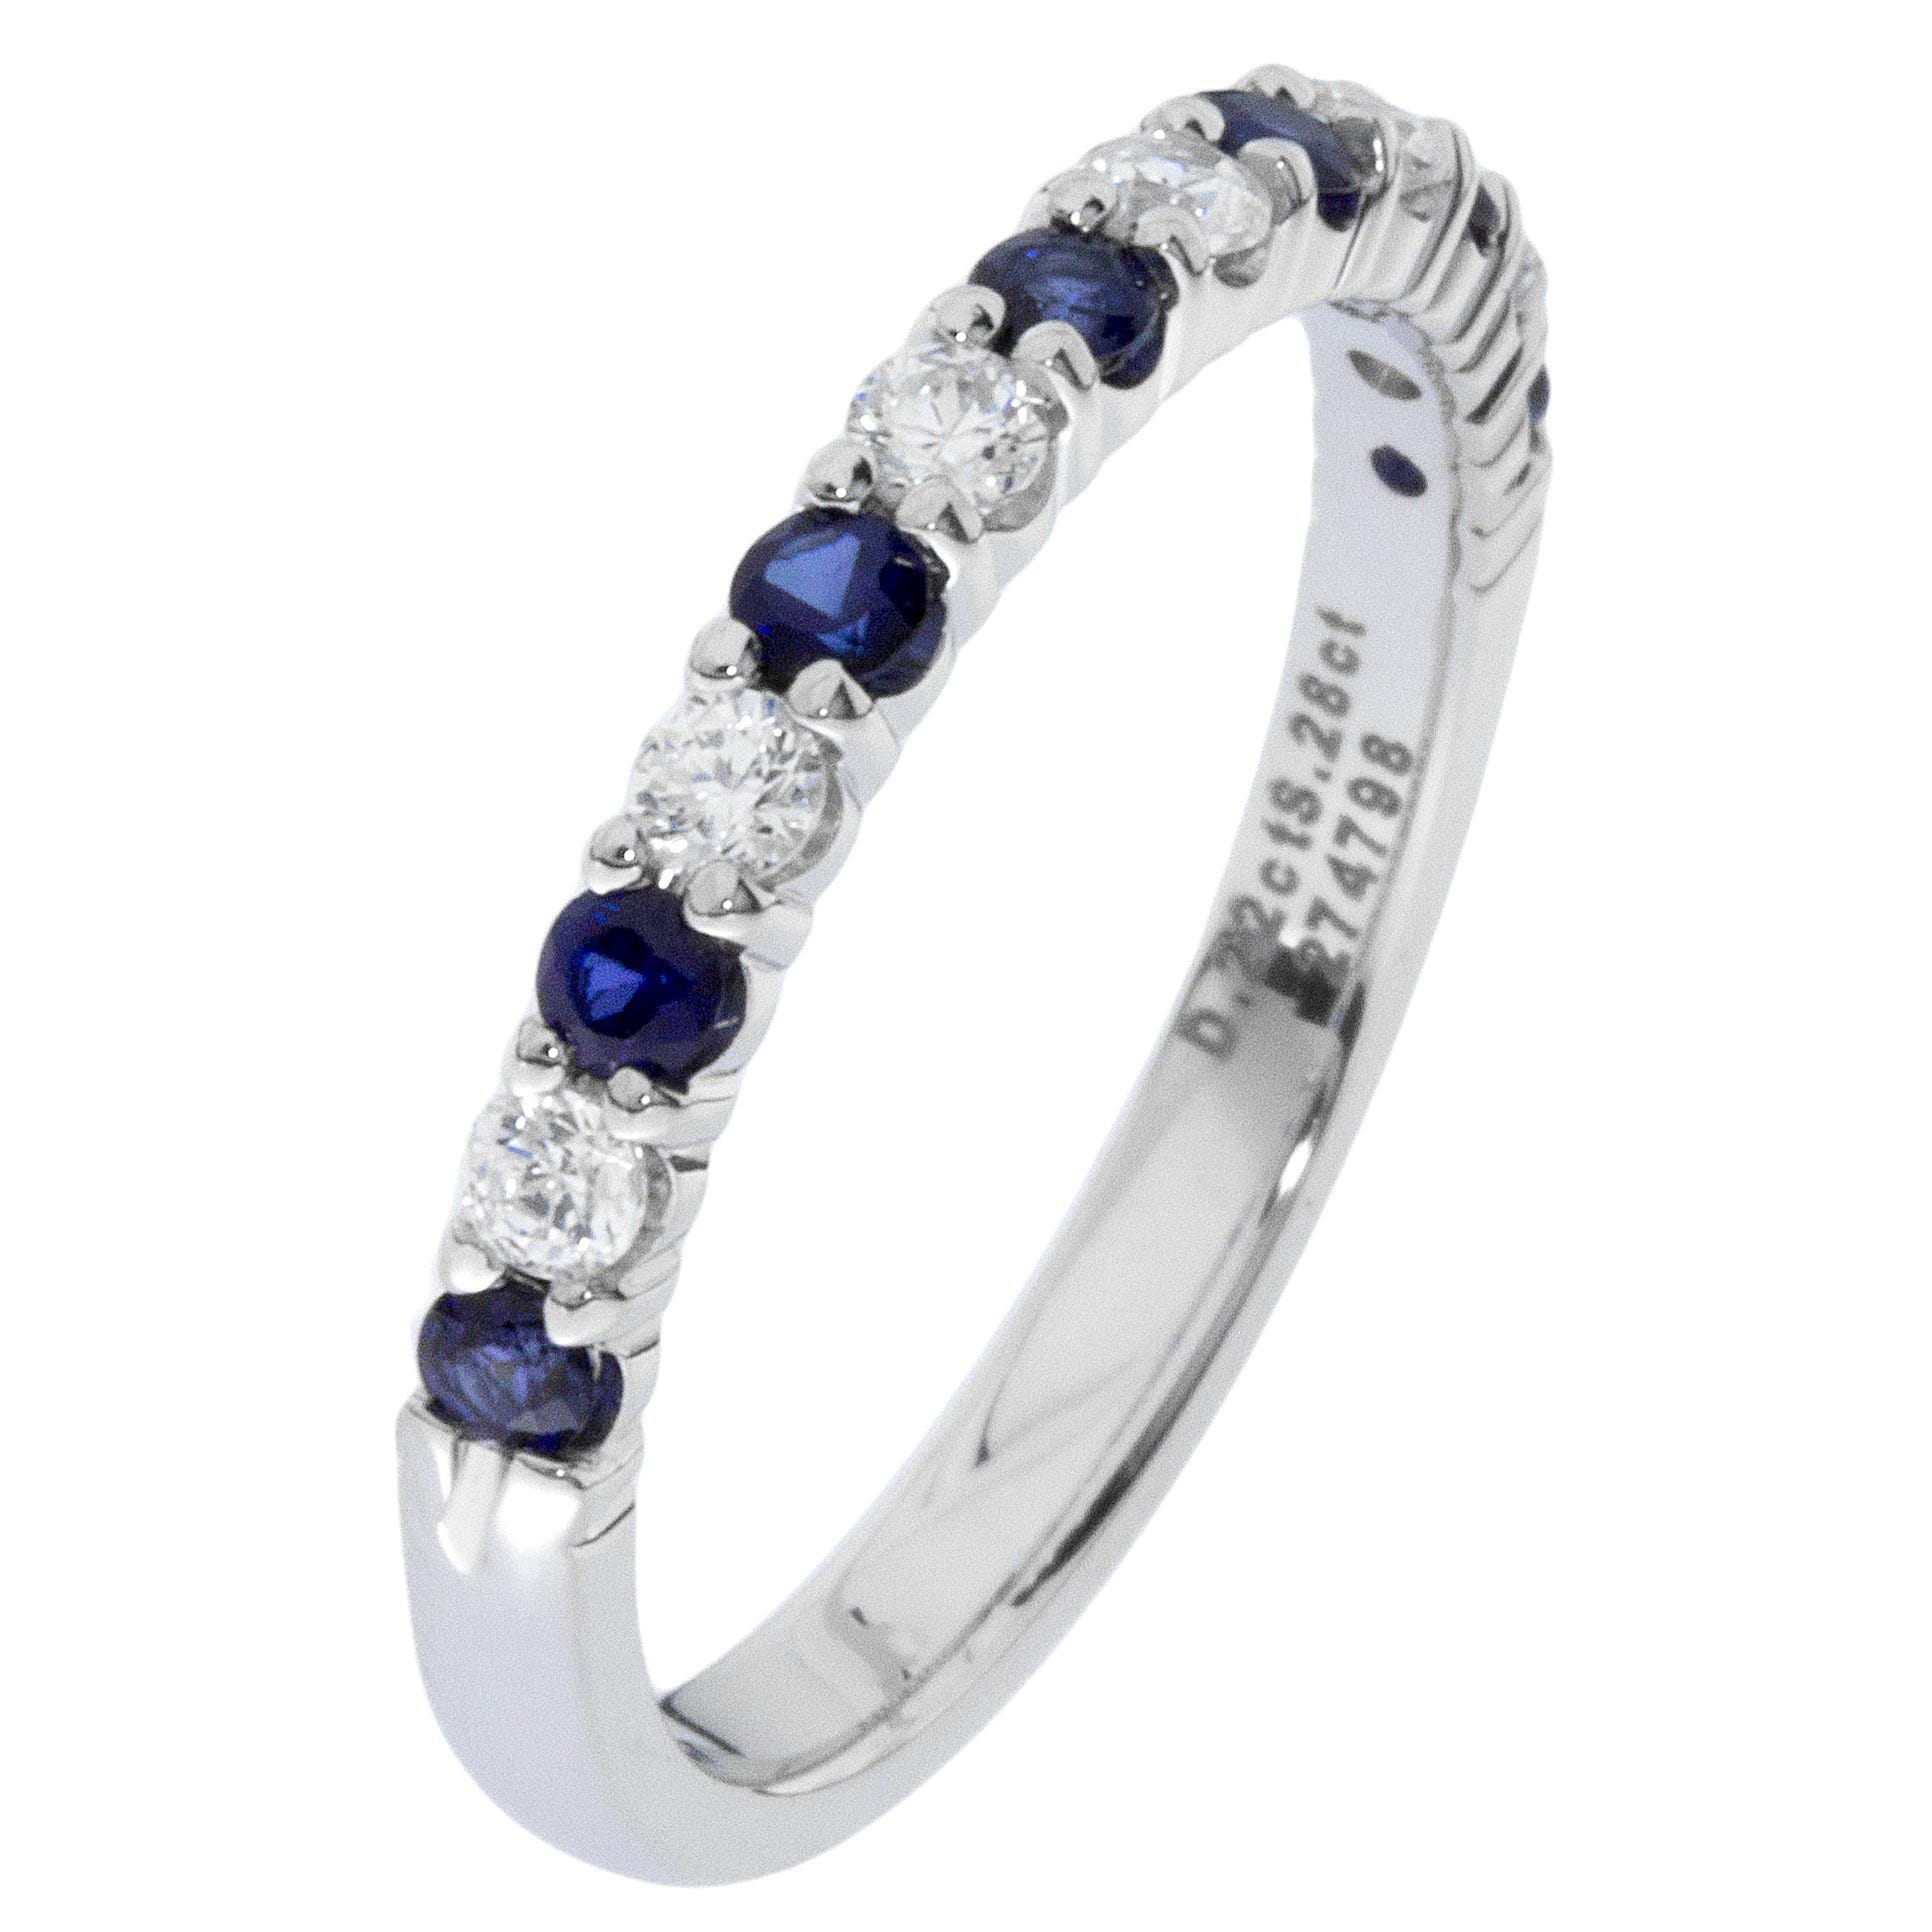 Diamond & Sapphire Prong Set 1/4ctw. Band in 14k White Gold